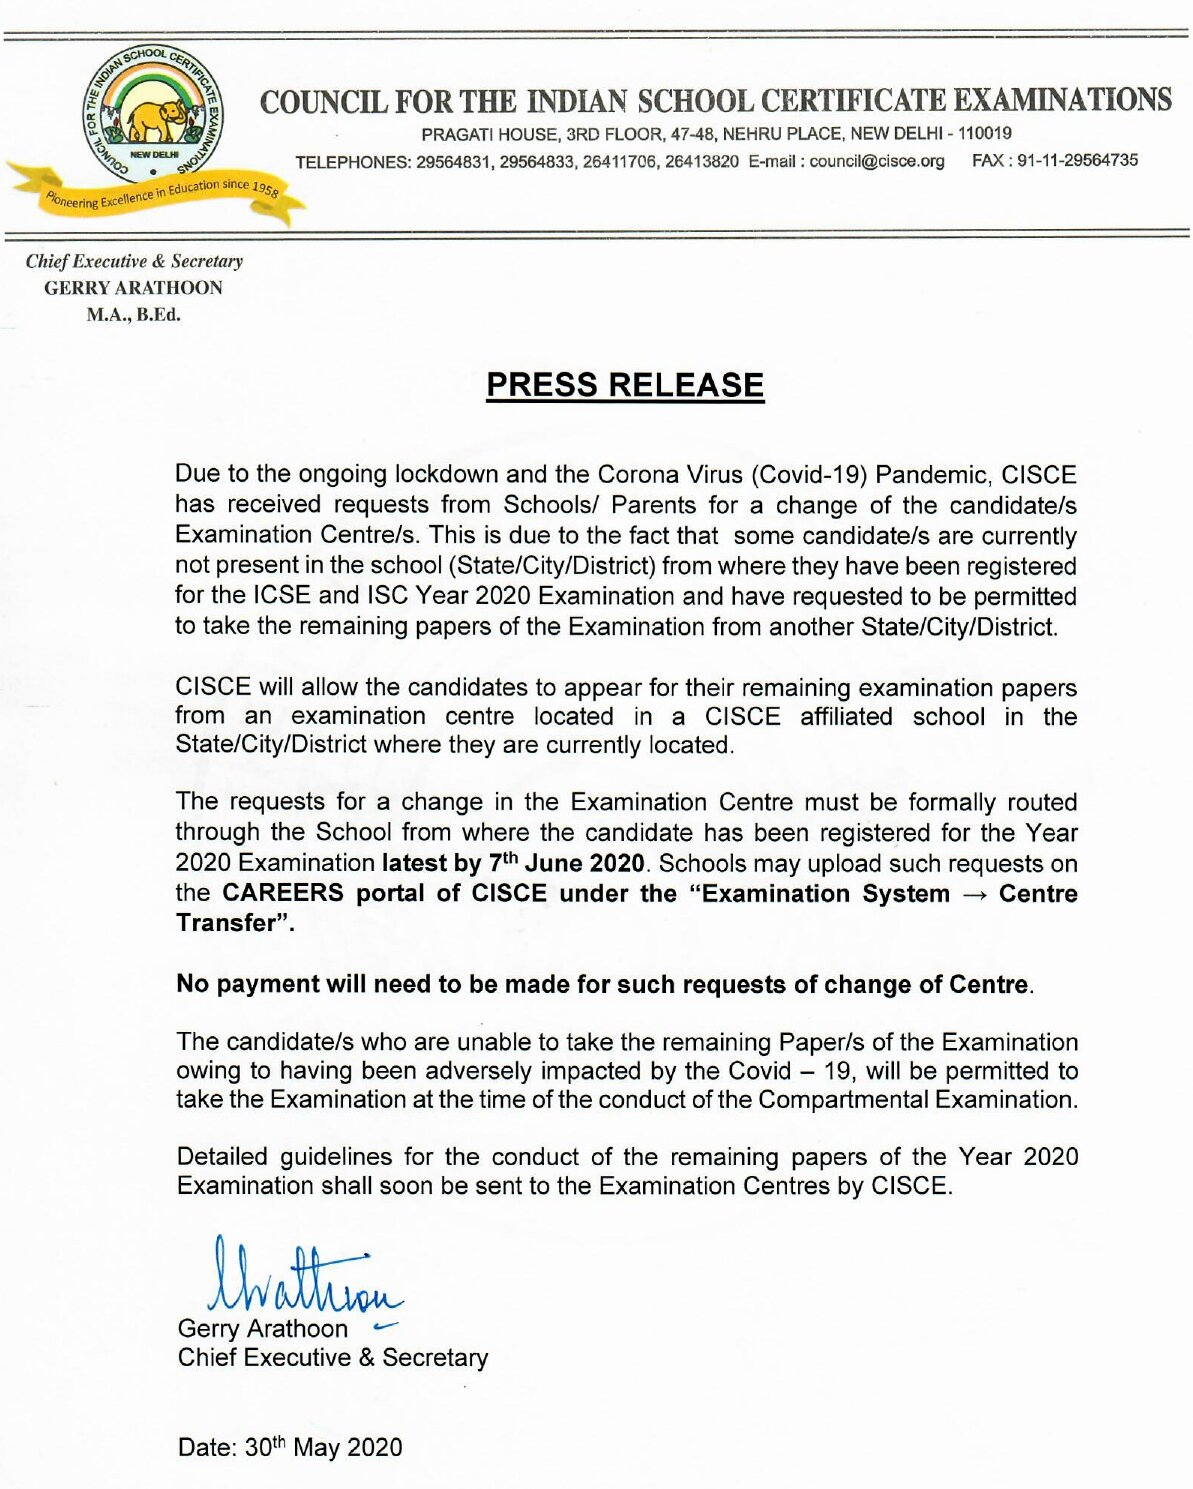 press release 30 MAY 2020 CISCE BOARD